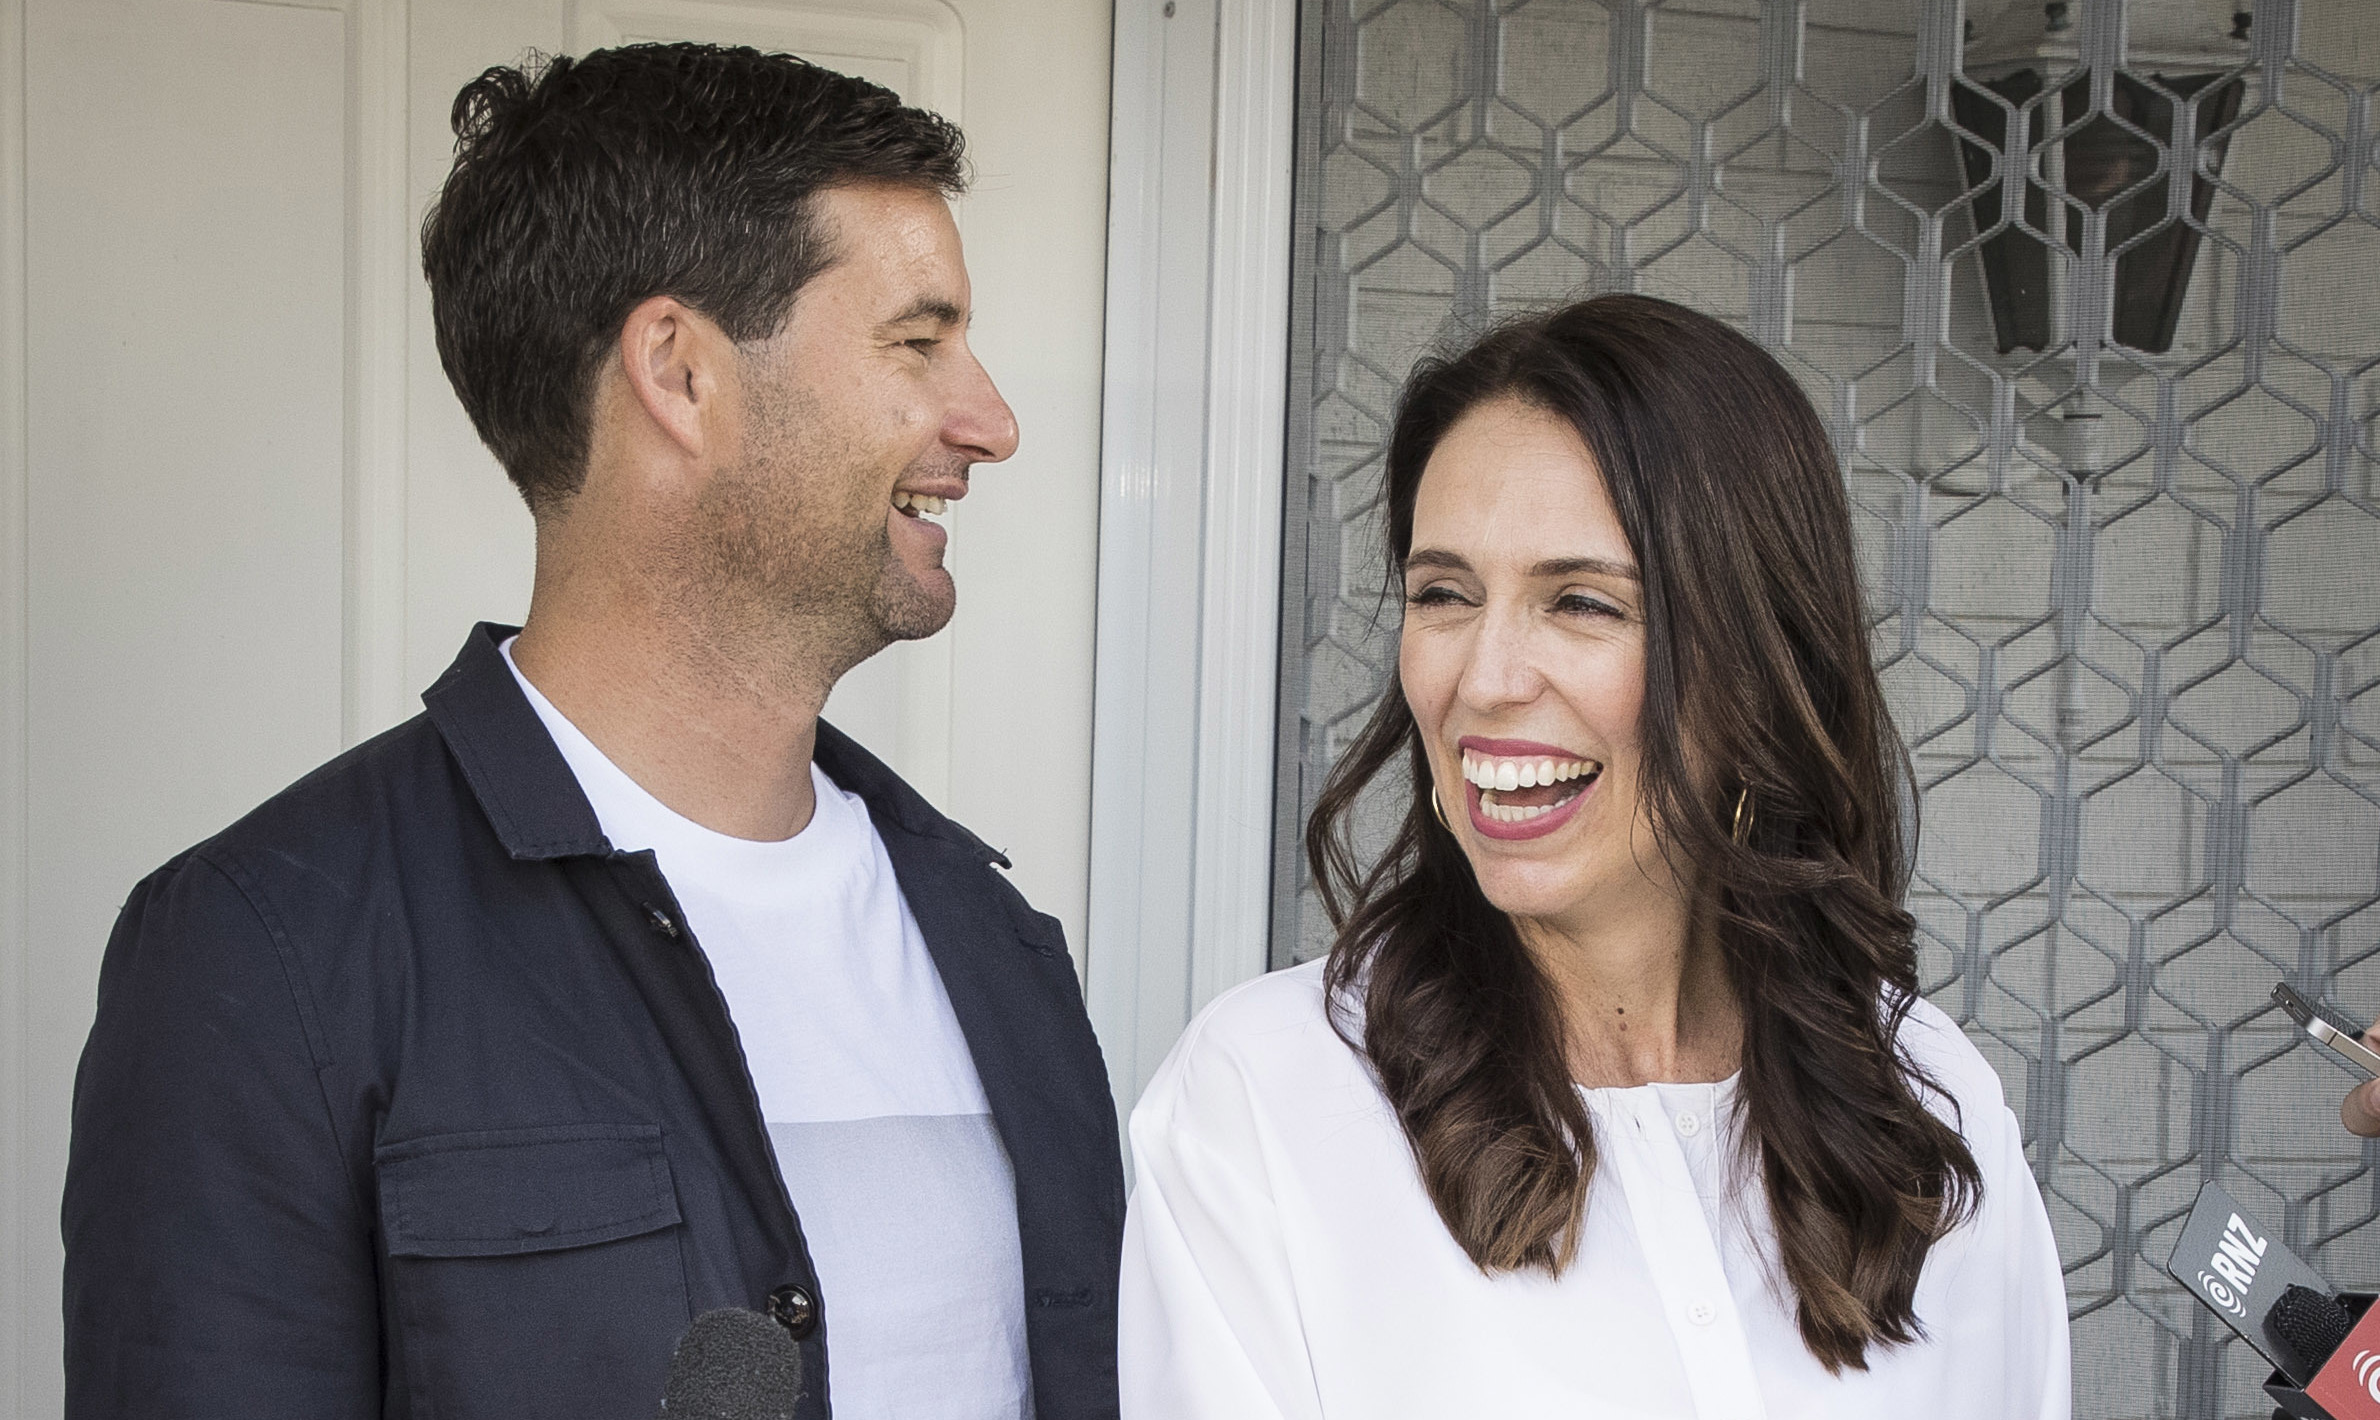 New Zealand Prime Minister Jacinda Ardern, right, and her partner Clarke Gayford